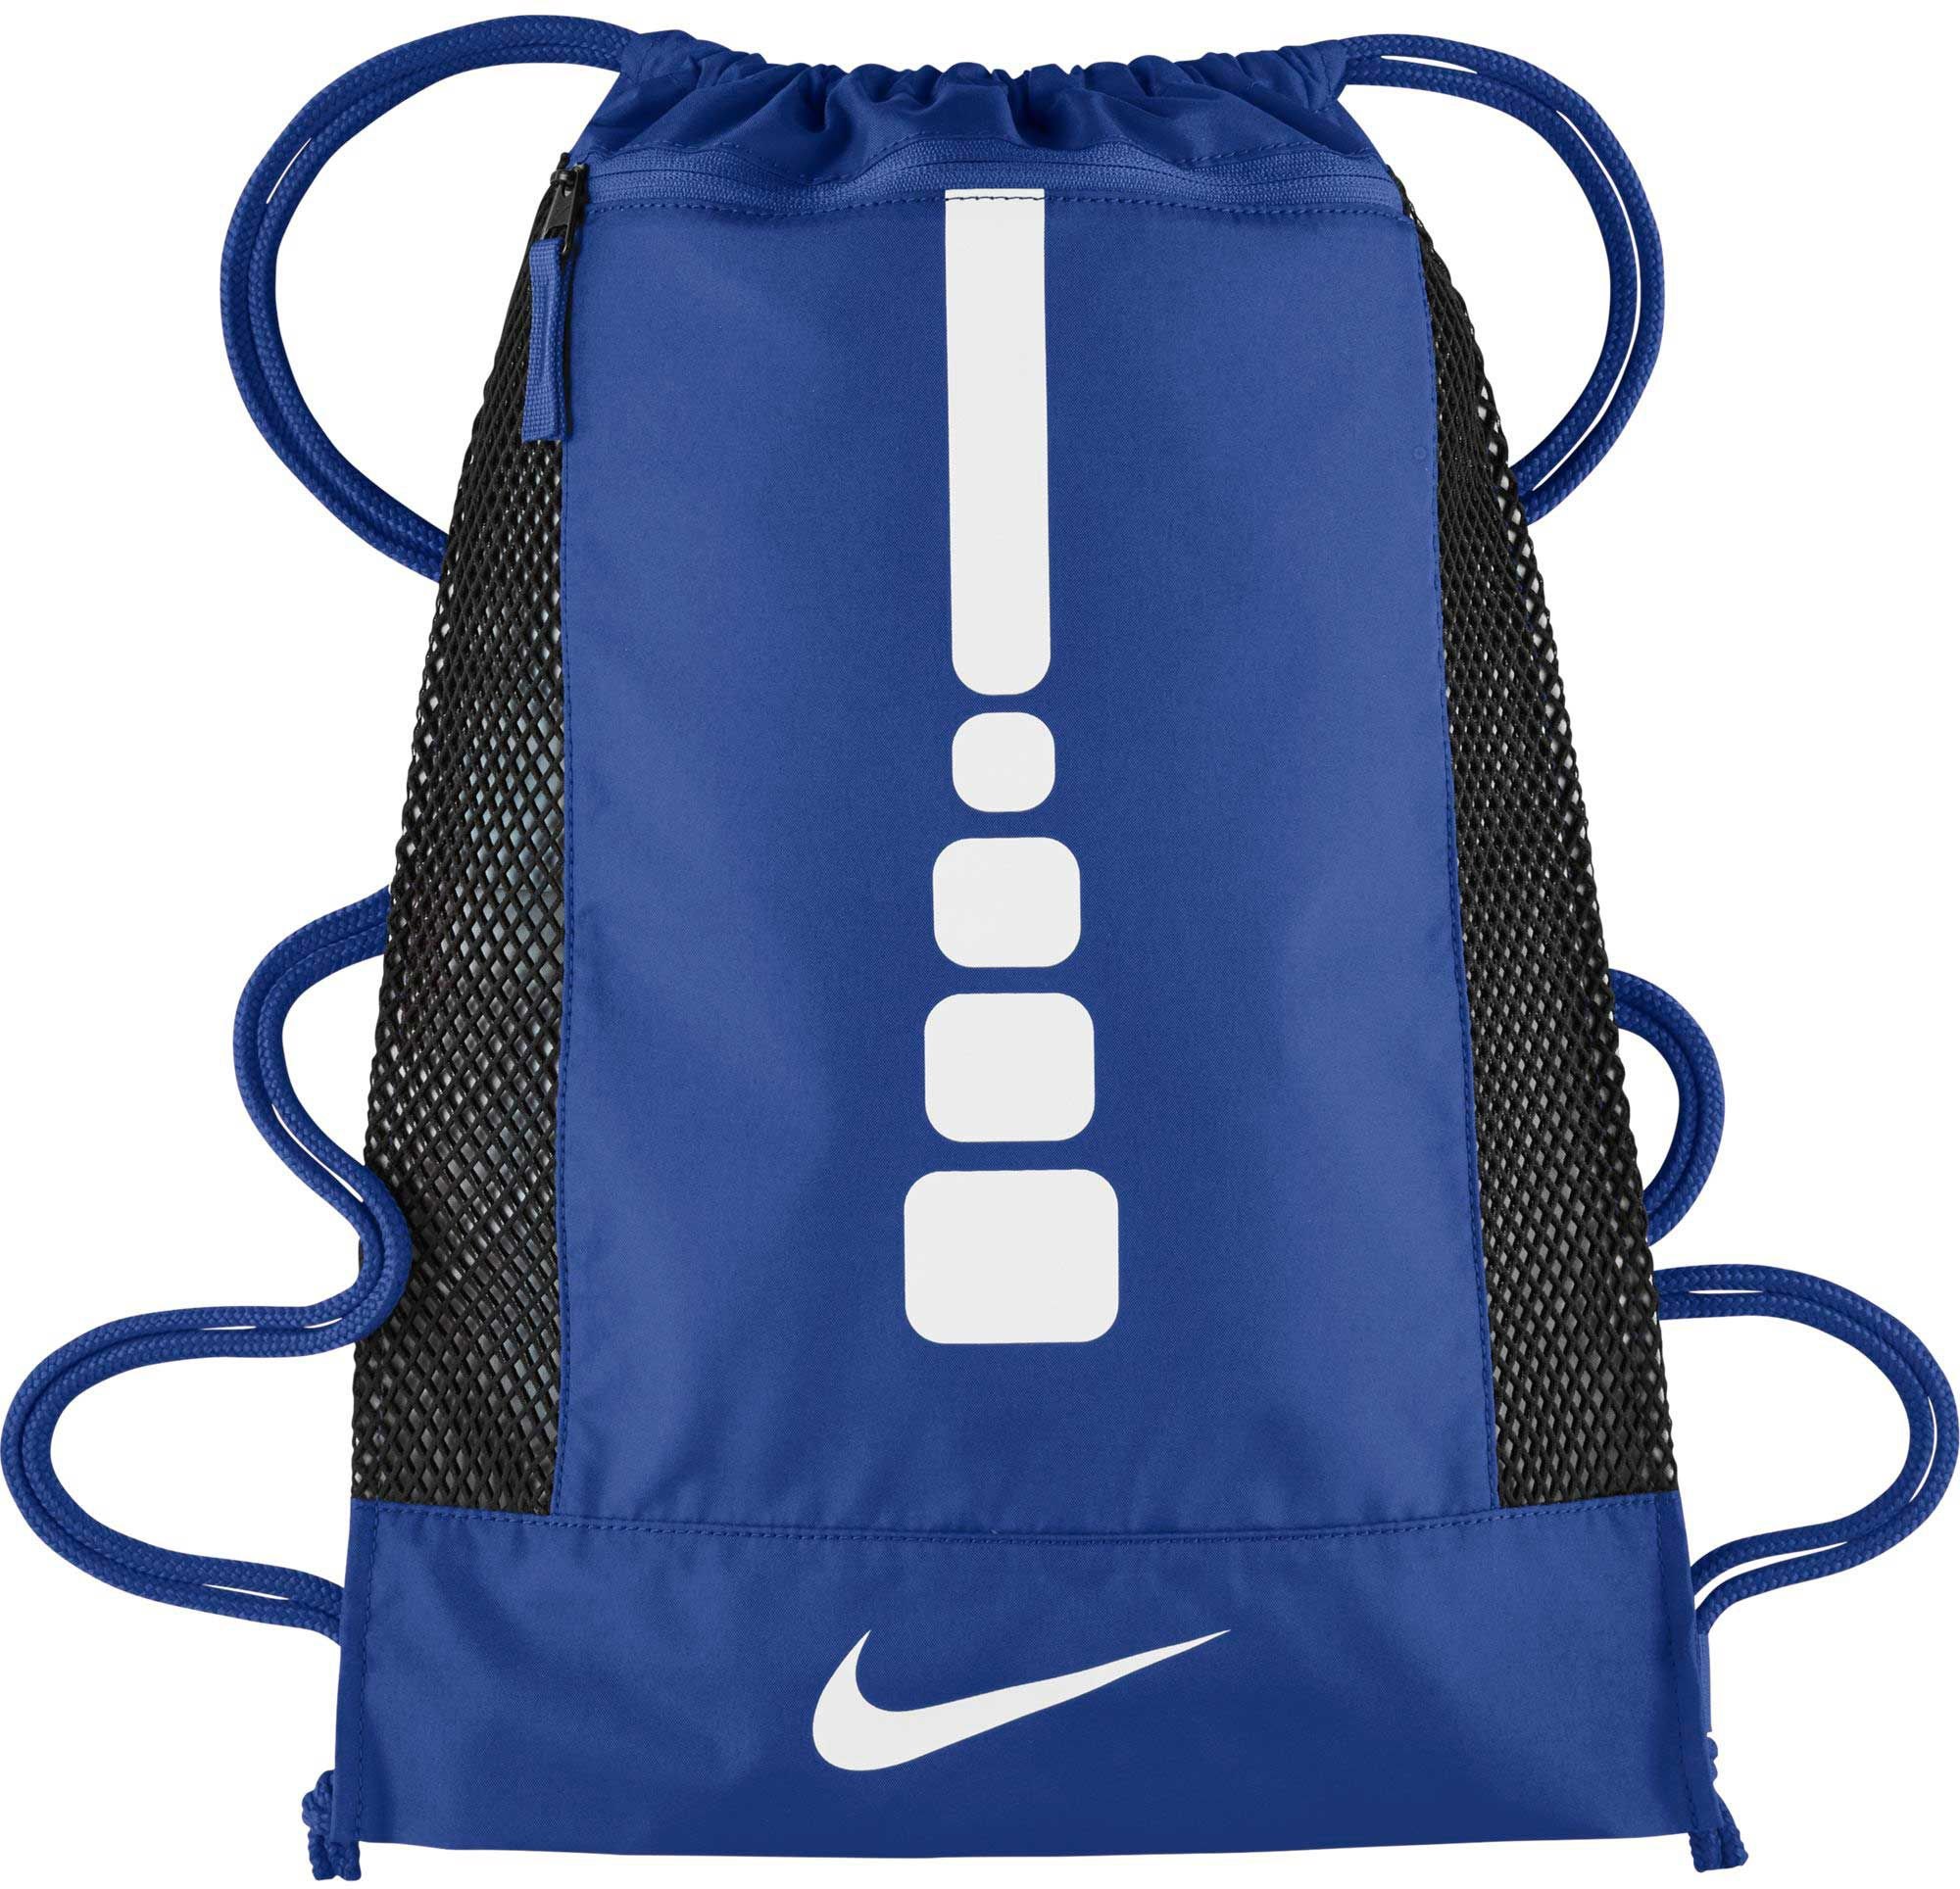 Nike Mesh Backpack For Sale - CEAGESP 1c350a1ea87d